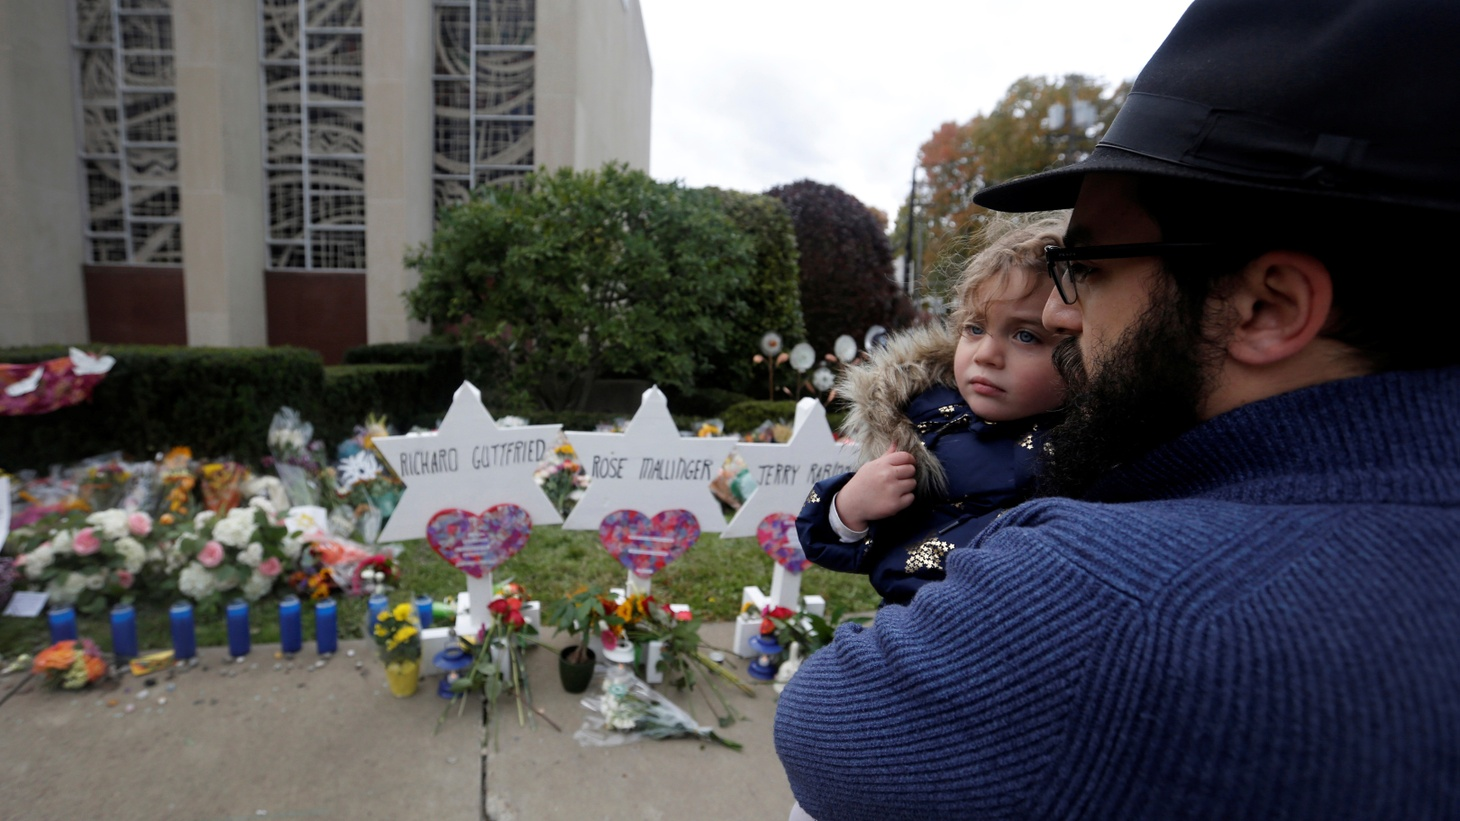 The Jewish community in LA vows to take action in the wake of the worst attack on Jews in U.S. history. Eleven people were killed at a Pittsburgh synagogue over the weekend. We talk with two rabbis here about how they're moving forward.